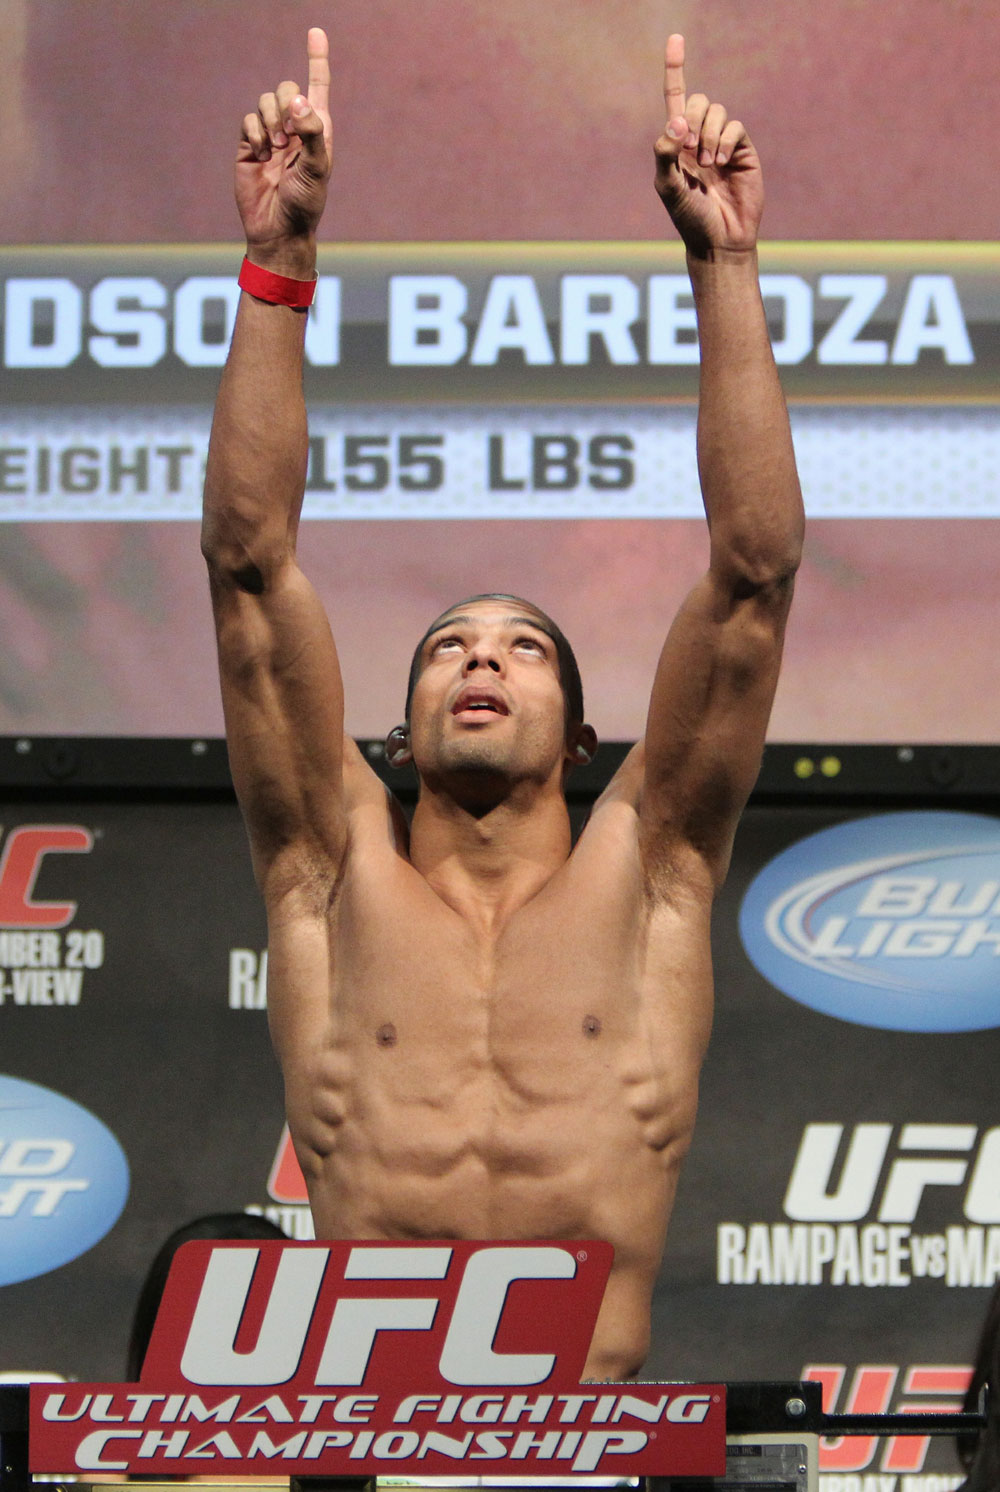 Edson Barboza weighs in at 155 lbs at the UFC 123 weigh-in at the Palace of Auburn Hills on November 19, 2010 in Auburn Hills, Michigan.  (Photo by Josh Hedges/Zuffa LLC/Zuffa LLC via Getty Images)